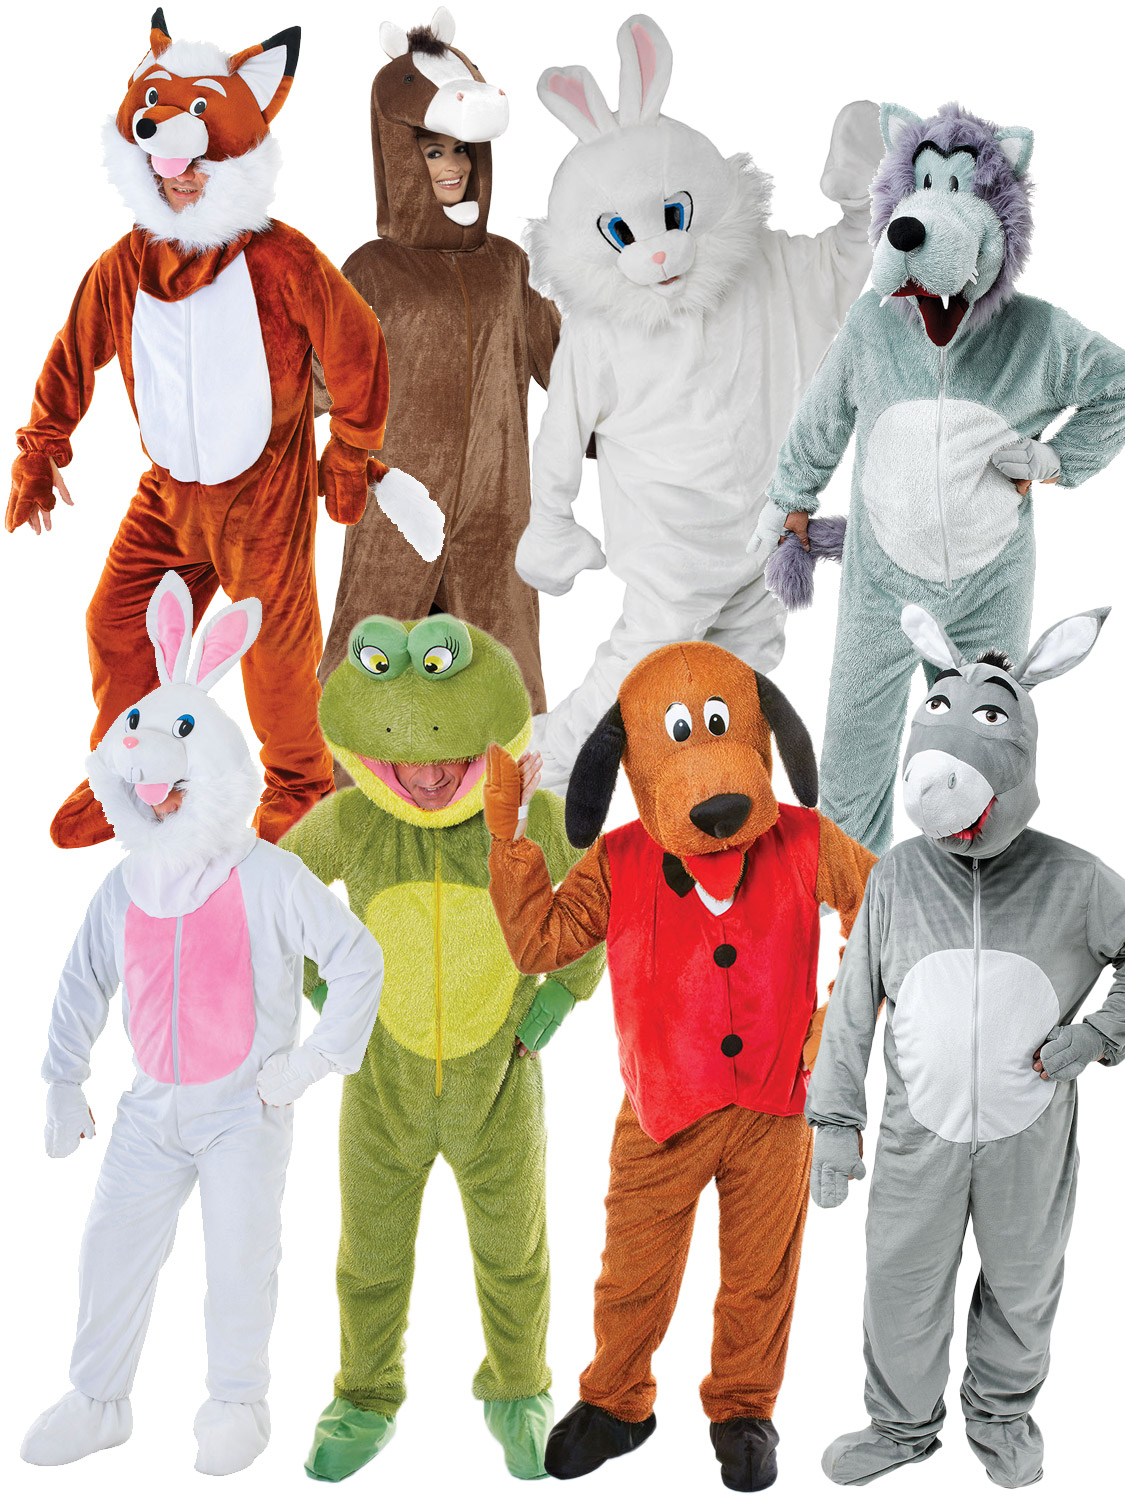 Kangaroo Costume Mens Womens Costume Adults Fancy Dress Outfit Animal M L XL